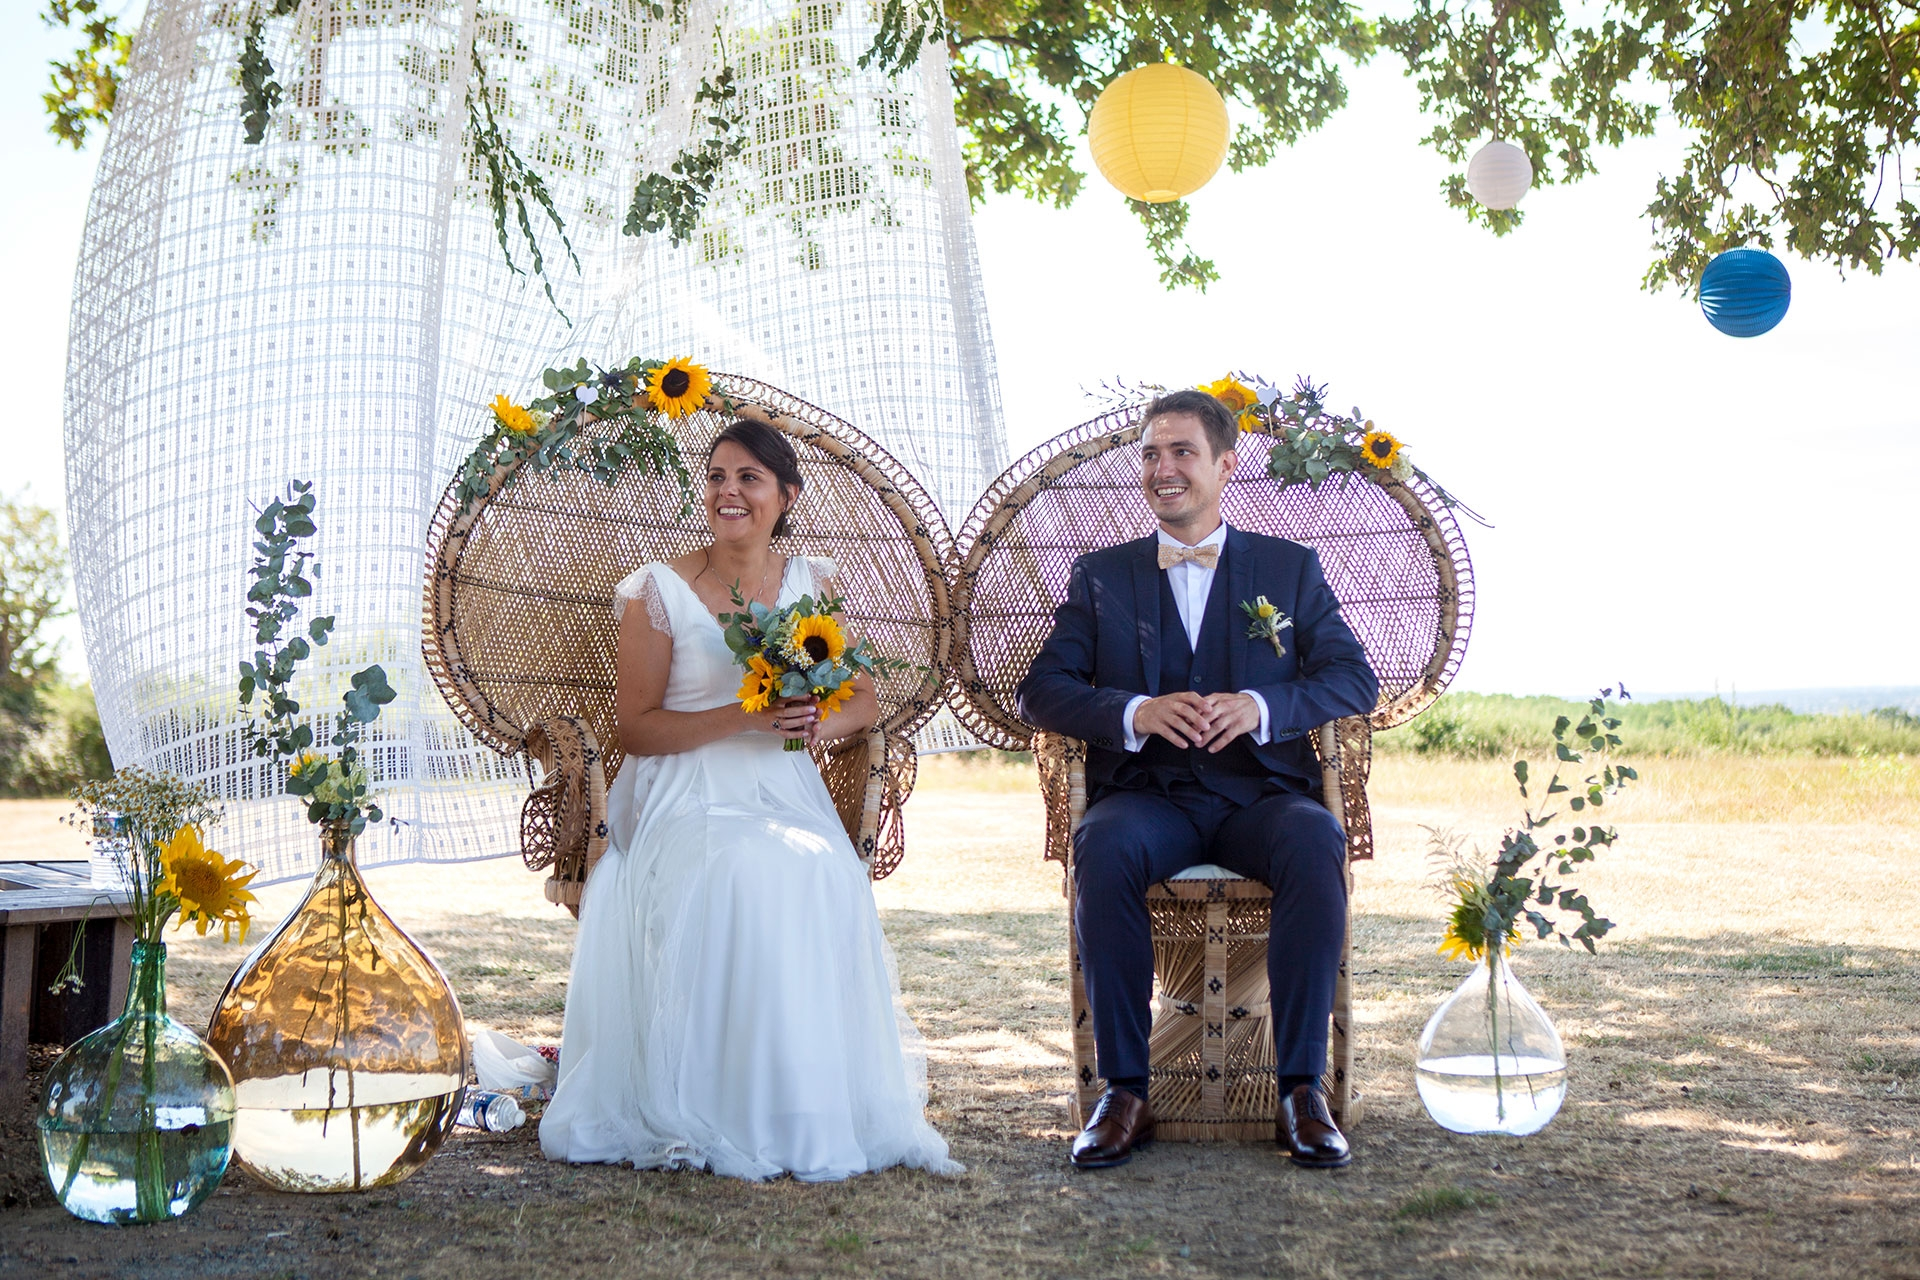 particuliers-evenements-mariage-oui-elise&quentin-34